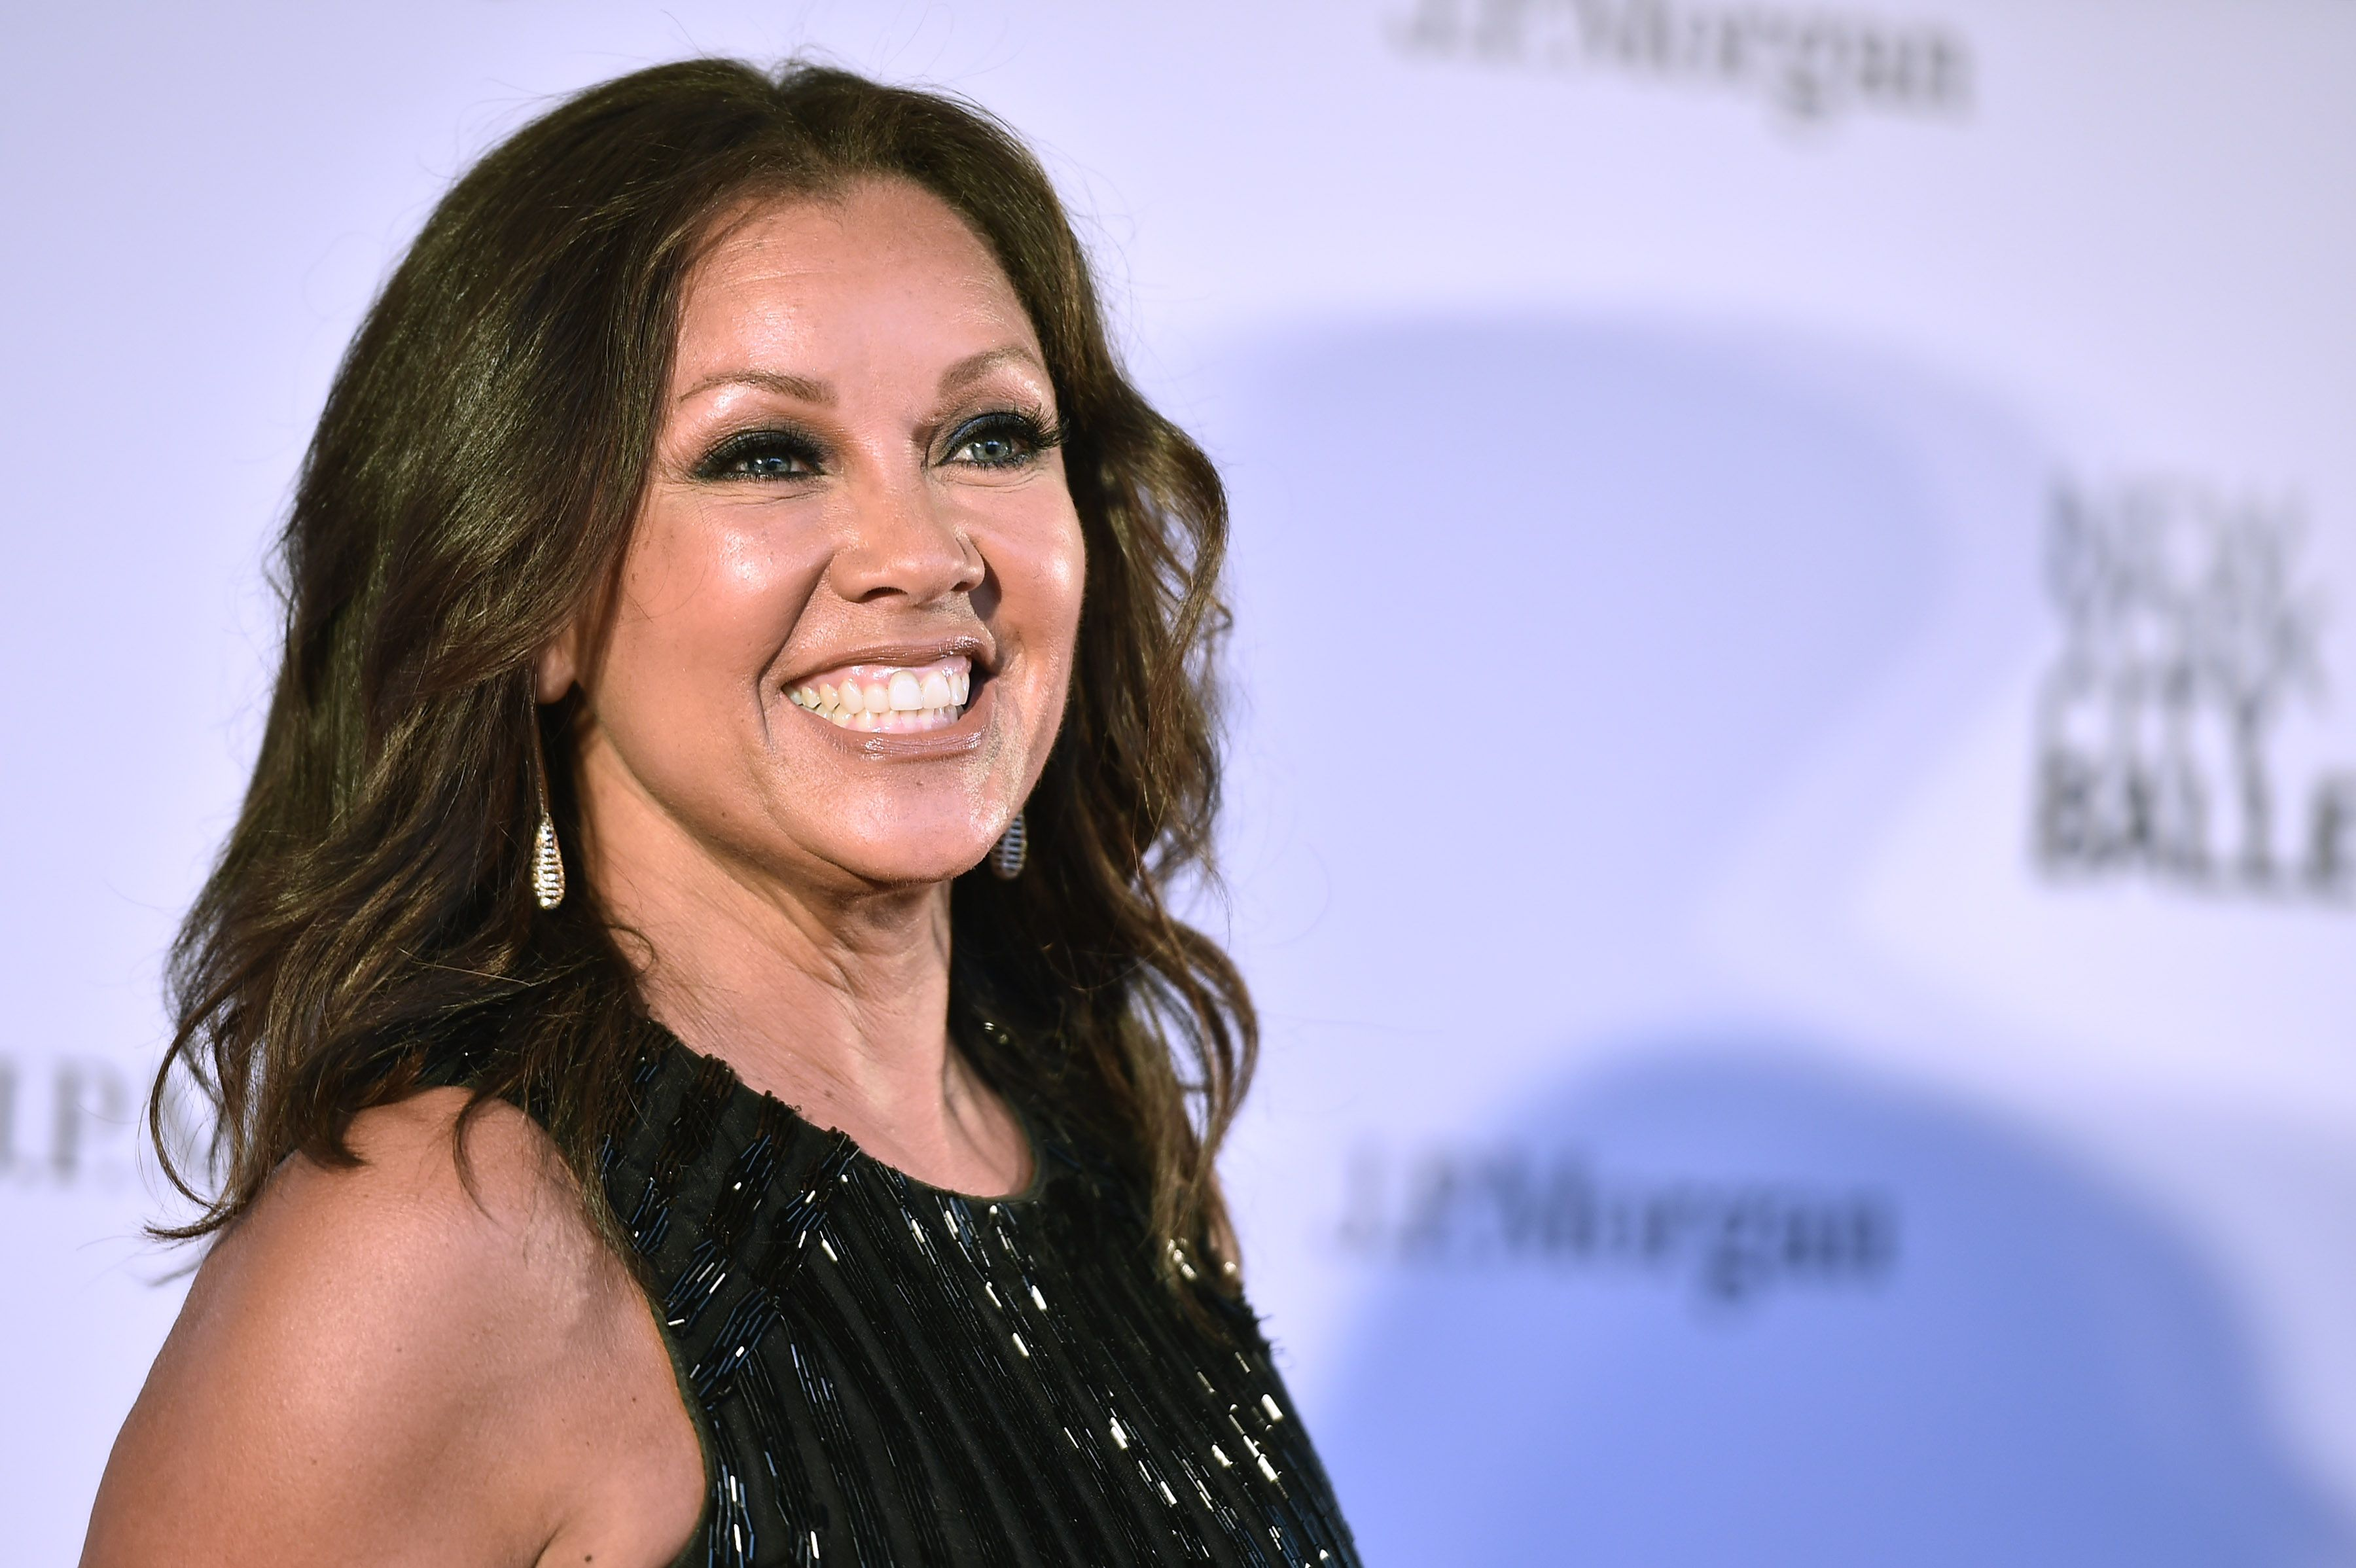 Vanessa Williams attends New York City Ballet 2018 Spring Gala at Lincoln Center on May 3, 2018 | Photo: Getty Images